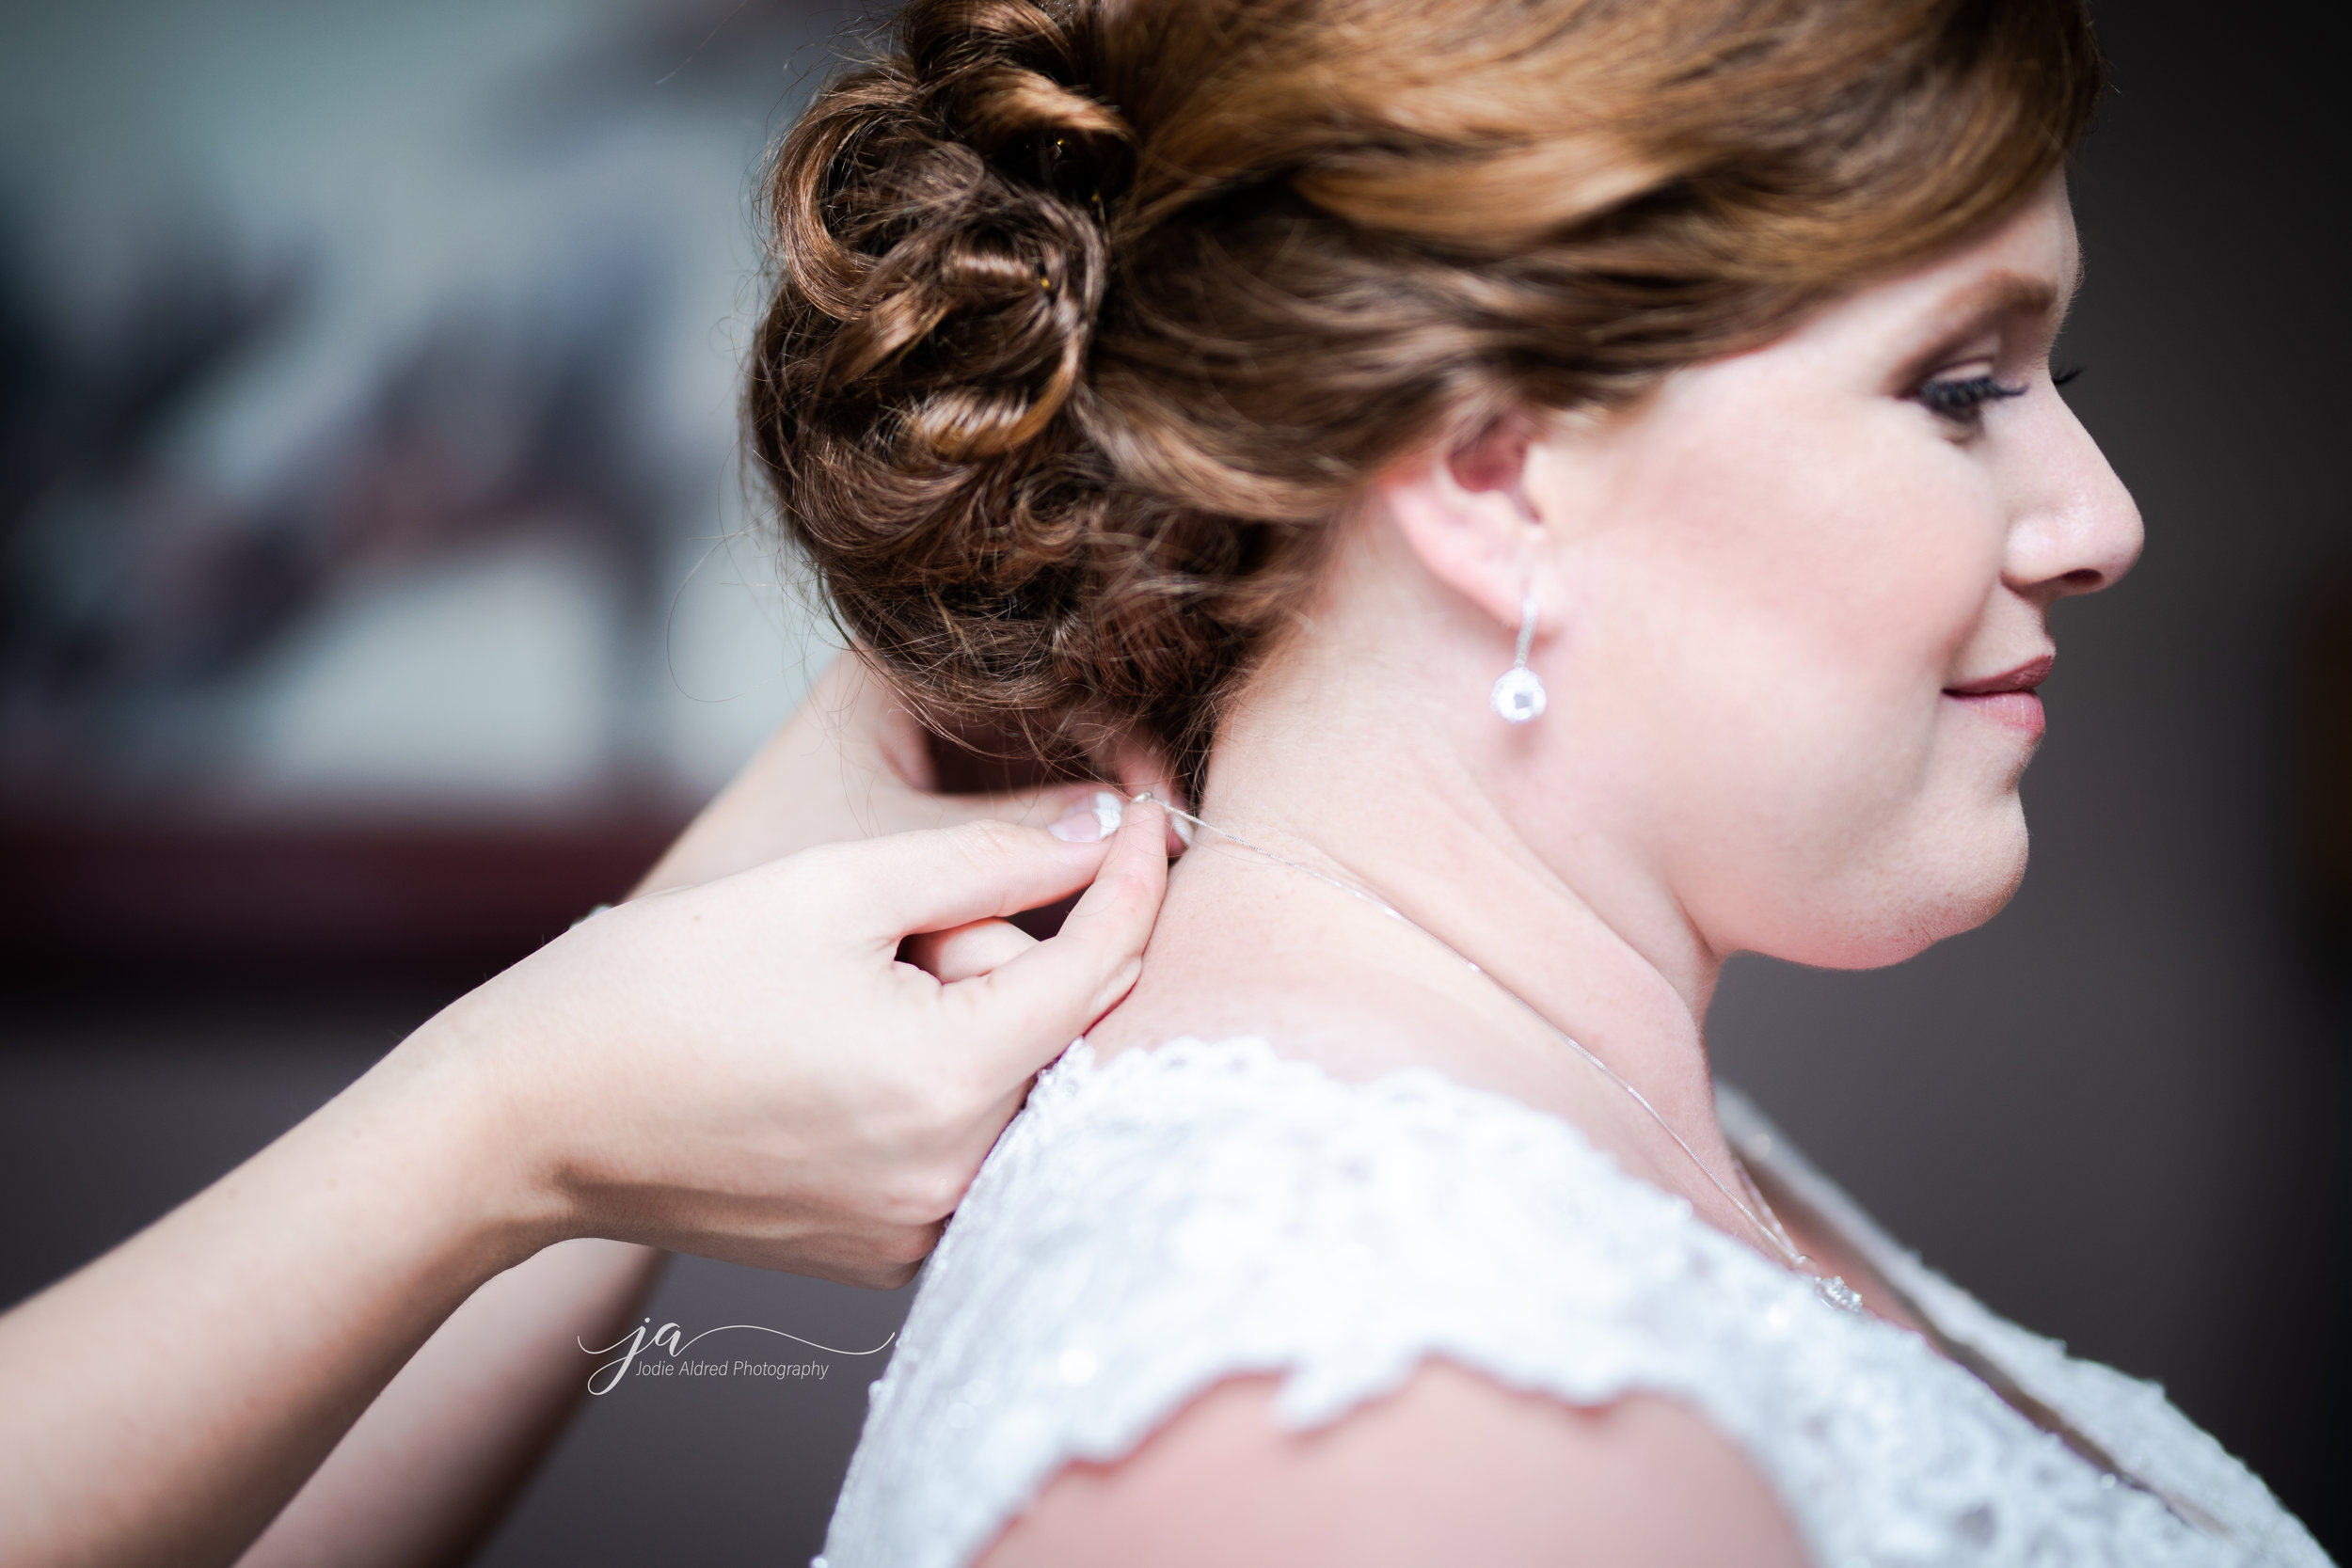 Details-Sister-Wedding-Jodie-Aldred-Photography-Chatham-Kent-Elgin-Middlesex-London-Ontario.jpg